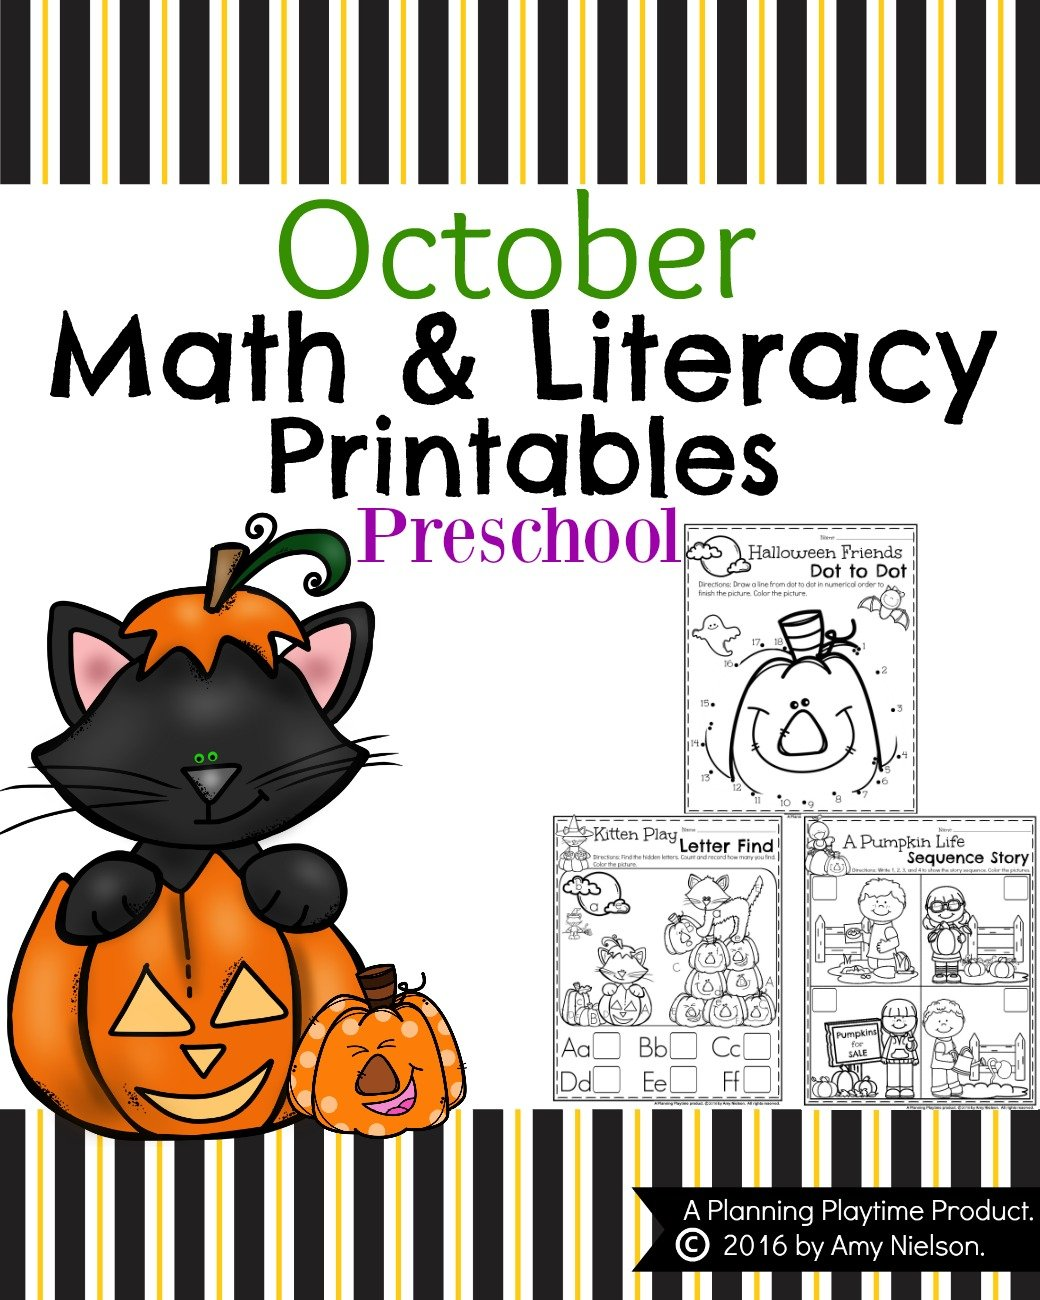 October Preschool Worksheets - Counting, Alphabet and Number recognition, and lots of other fun activities.